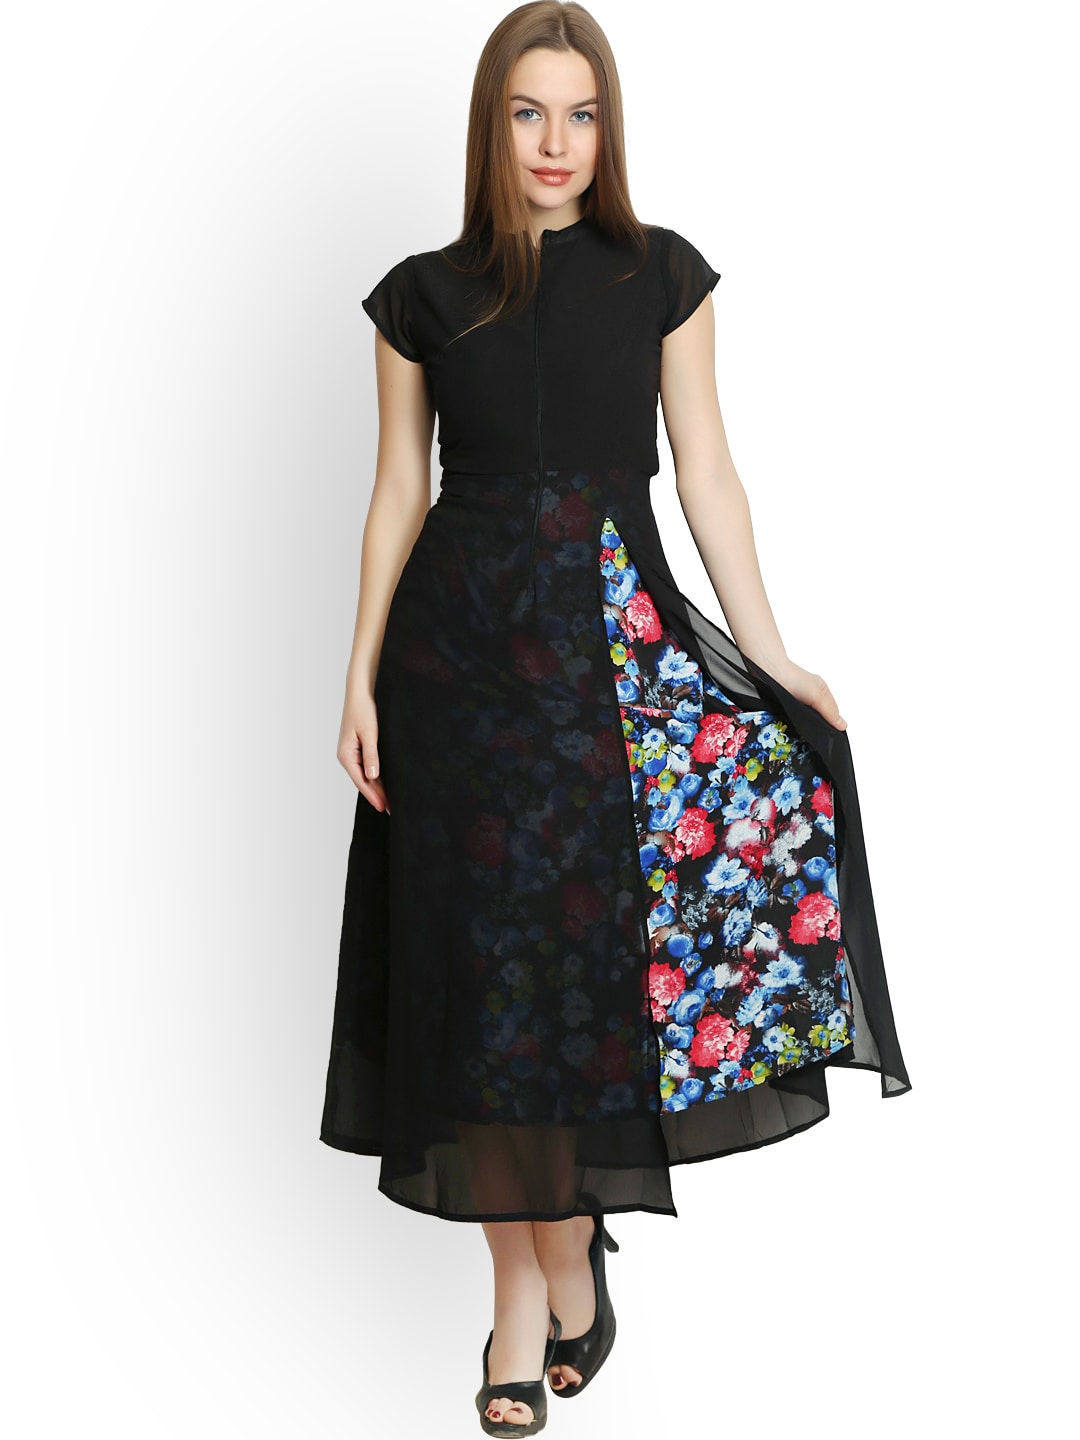 Clothing Ladies Online Shopping Belle Fille Black Polyester Georgette Maxi Dress